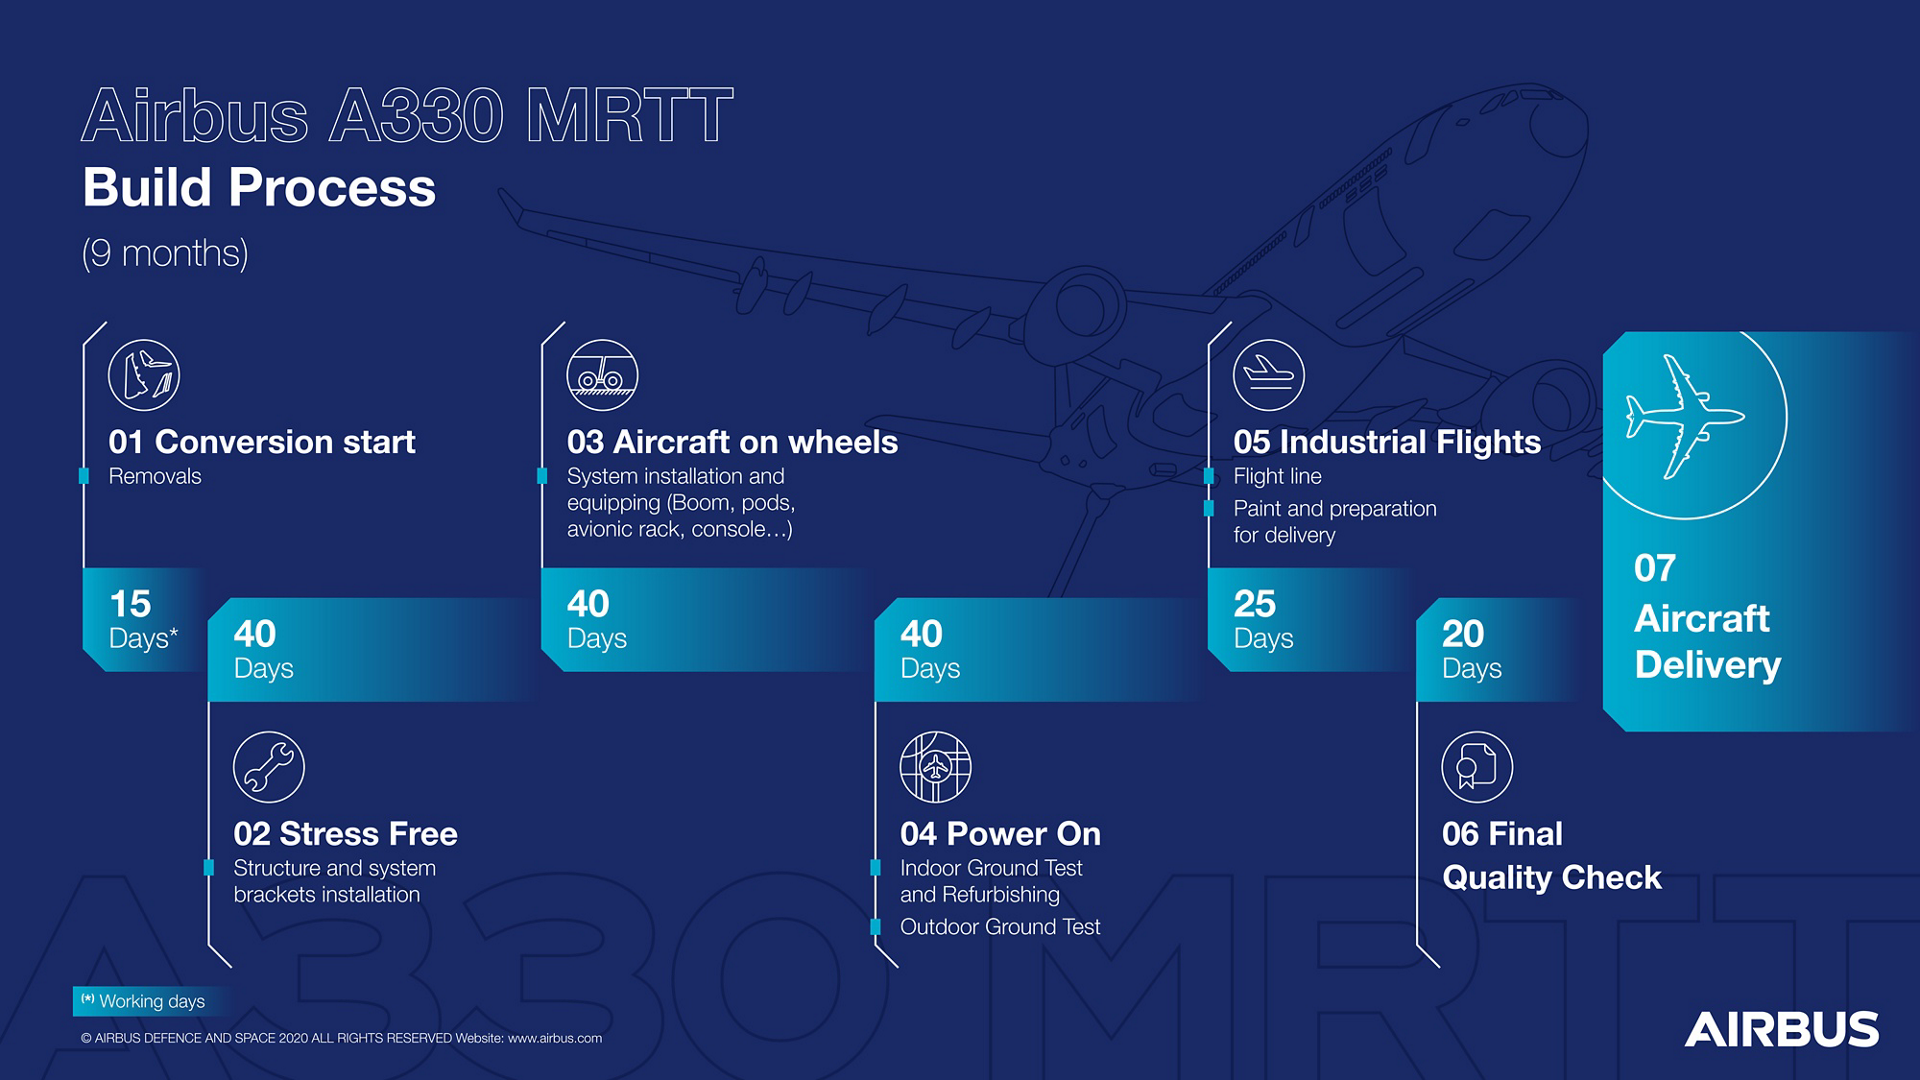 Having earned its reputation as the new-generation aerial tanker of choice for military services worldwide, Airbus' A330 Multi Role Tanker Transports (MRTTs) are now being outfitted for their multi-mission duties in an optimised industrial process – enabling five aircraft to undergo the conversion every year. - Infographic